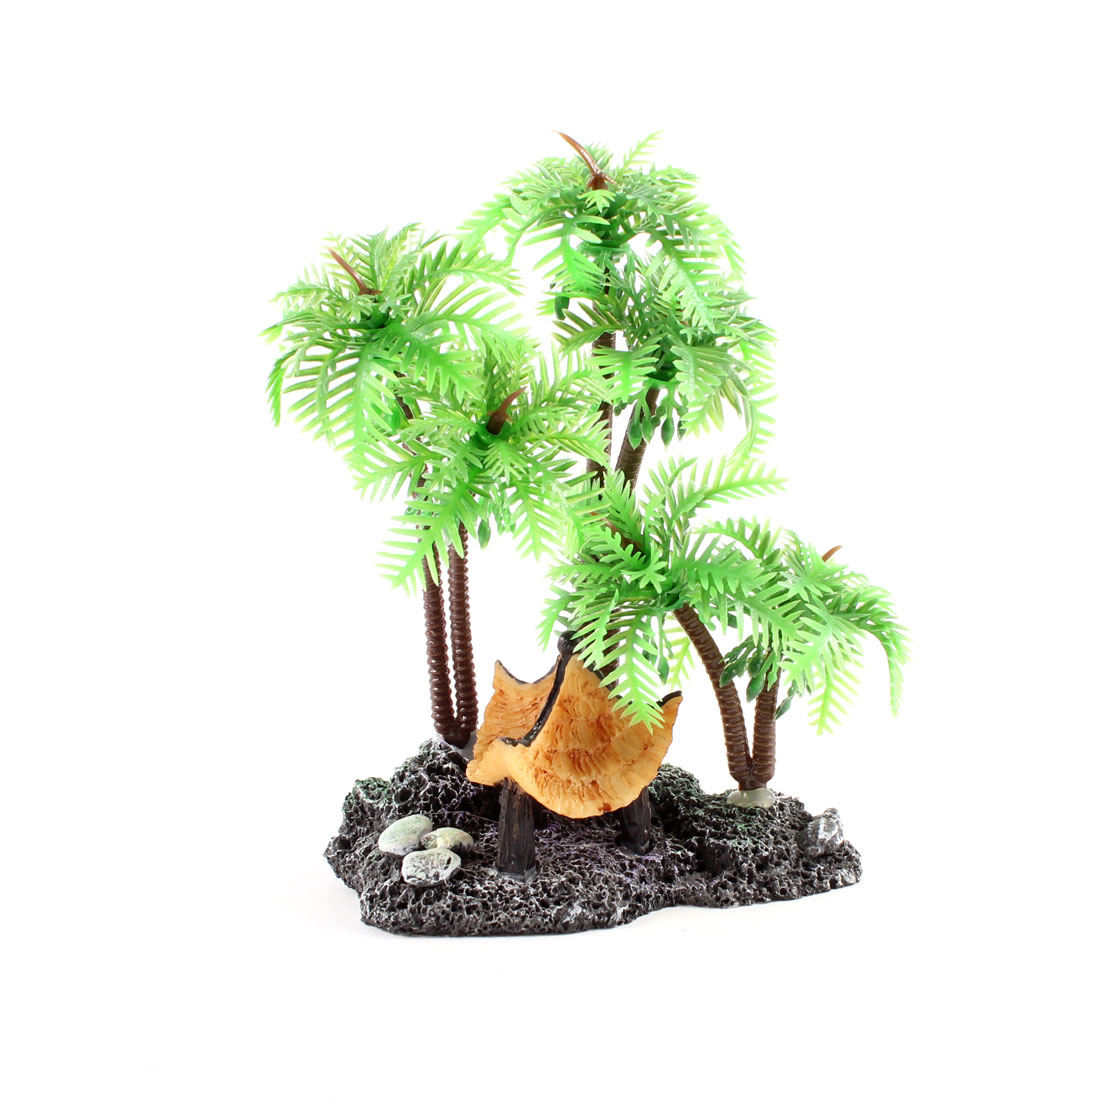 "Green Plastic Coconut Tree Style Aquatic Plants 4.5"" Height for Aquarium"